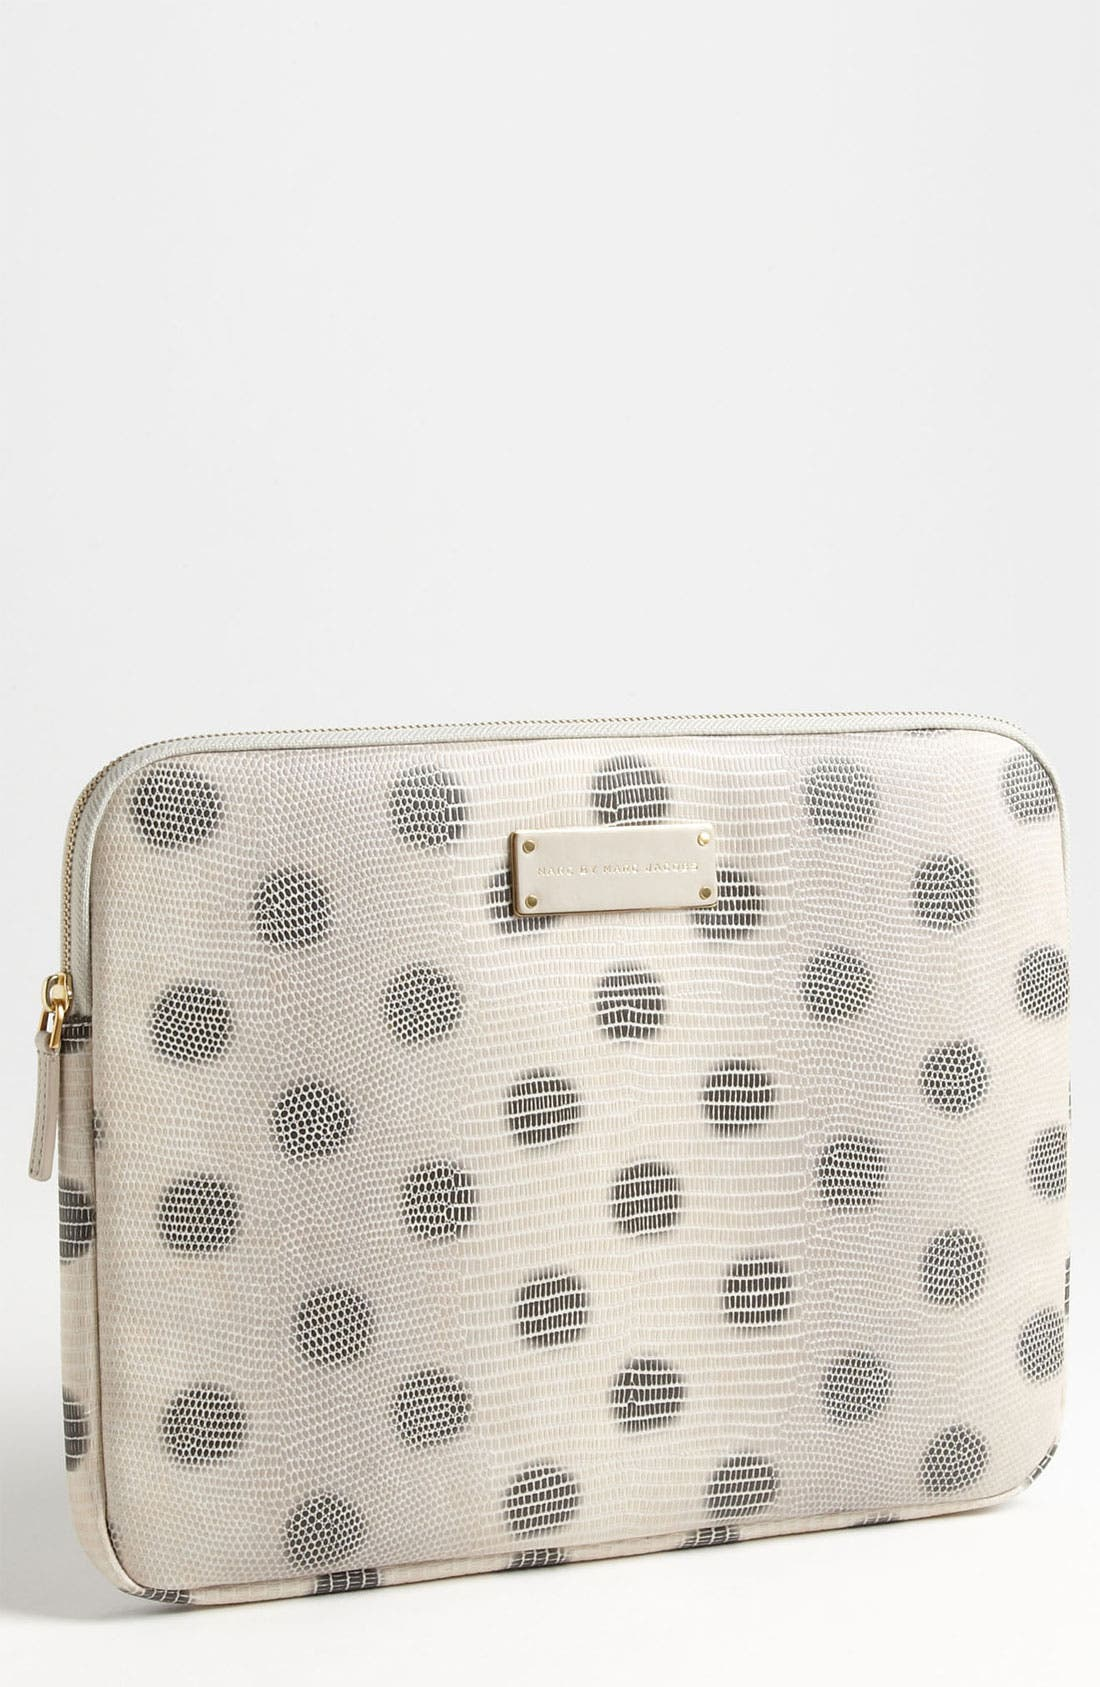 Alternate Image 1 Selected - MARC BY MARC JACOBS 'Take Me - Lizzie Dots' Embossed Computer Sleeve (13 Inch)